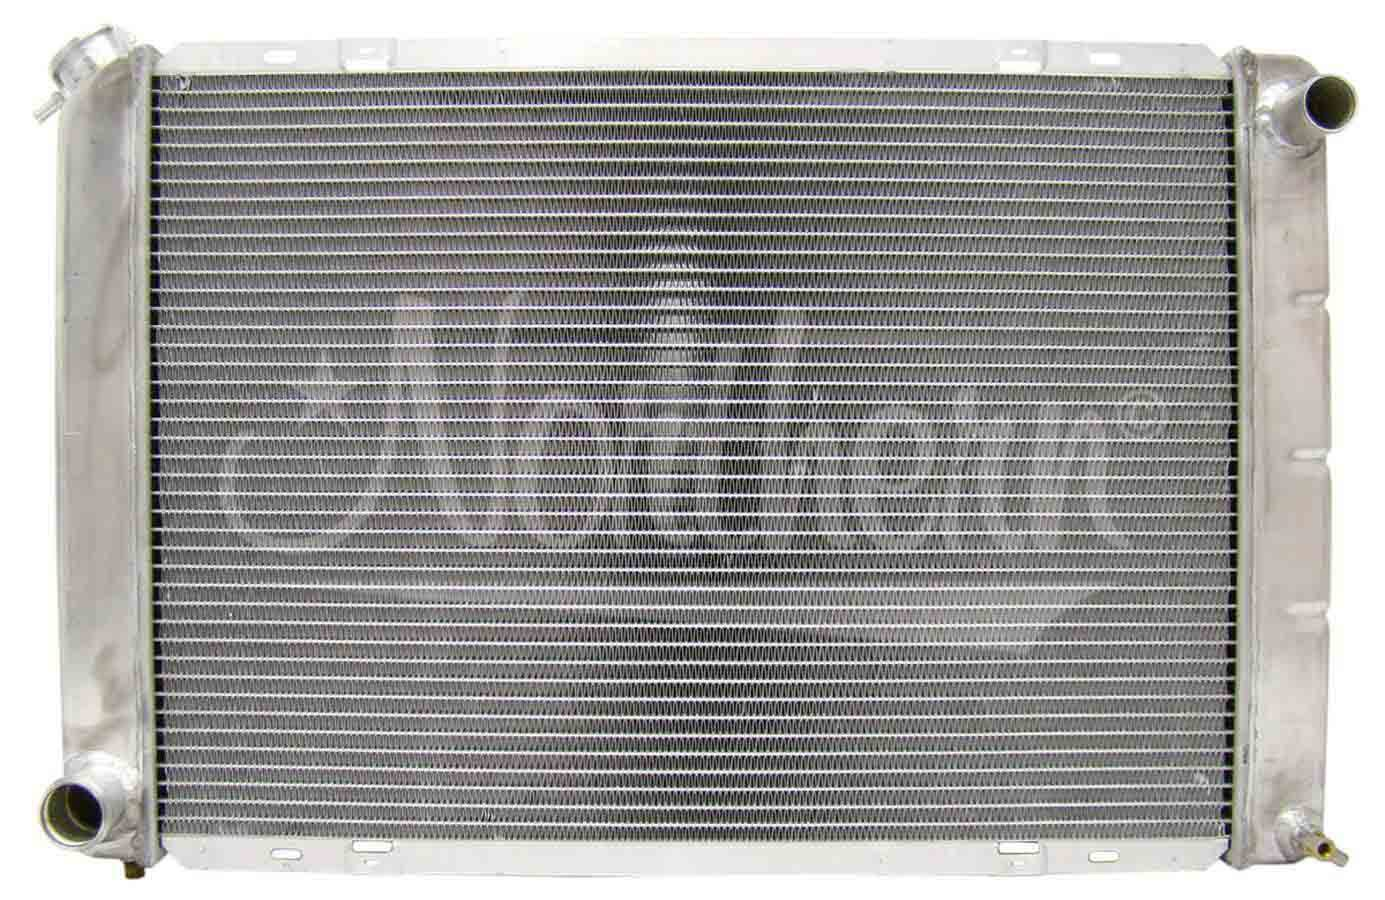 Northern Radiator 205058 Radiator, 29 in W x 18-7/8 in H x 3-1/8 in D, Passenger Side Inlet, Driver Side Outlet, Aluminum, Natural, Manual, Ford Mustang 1980-93, Each